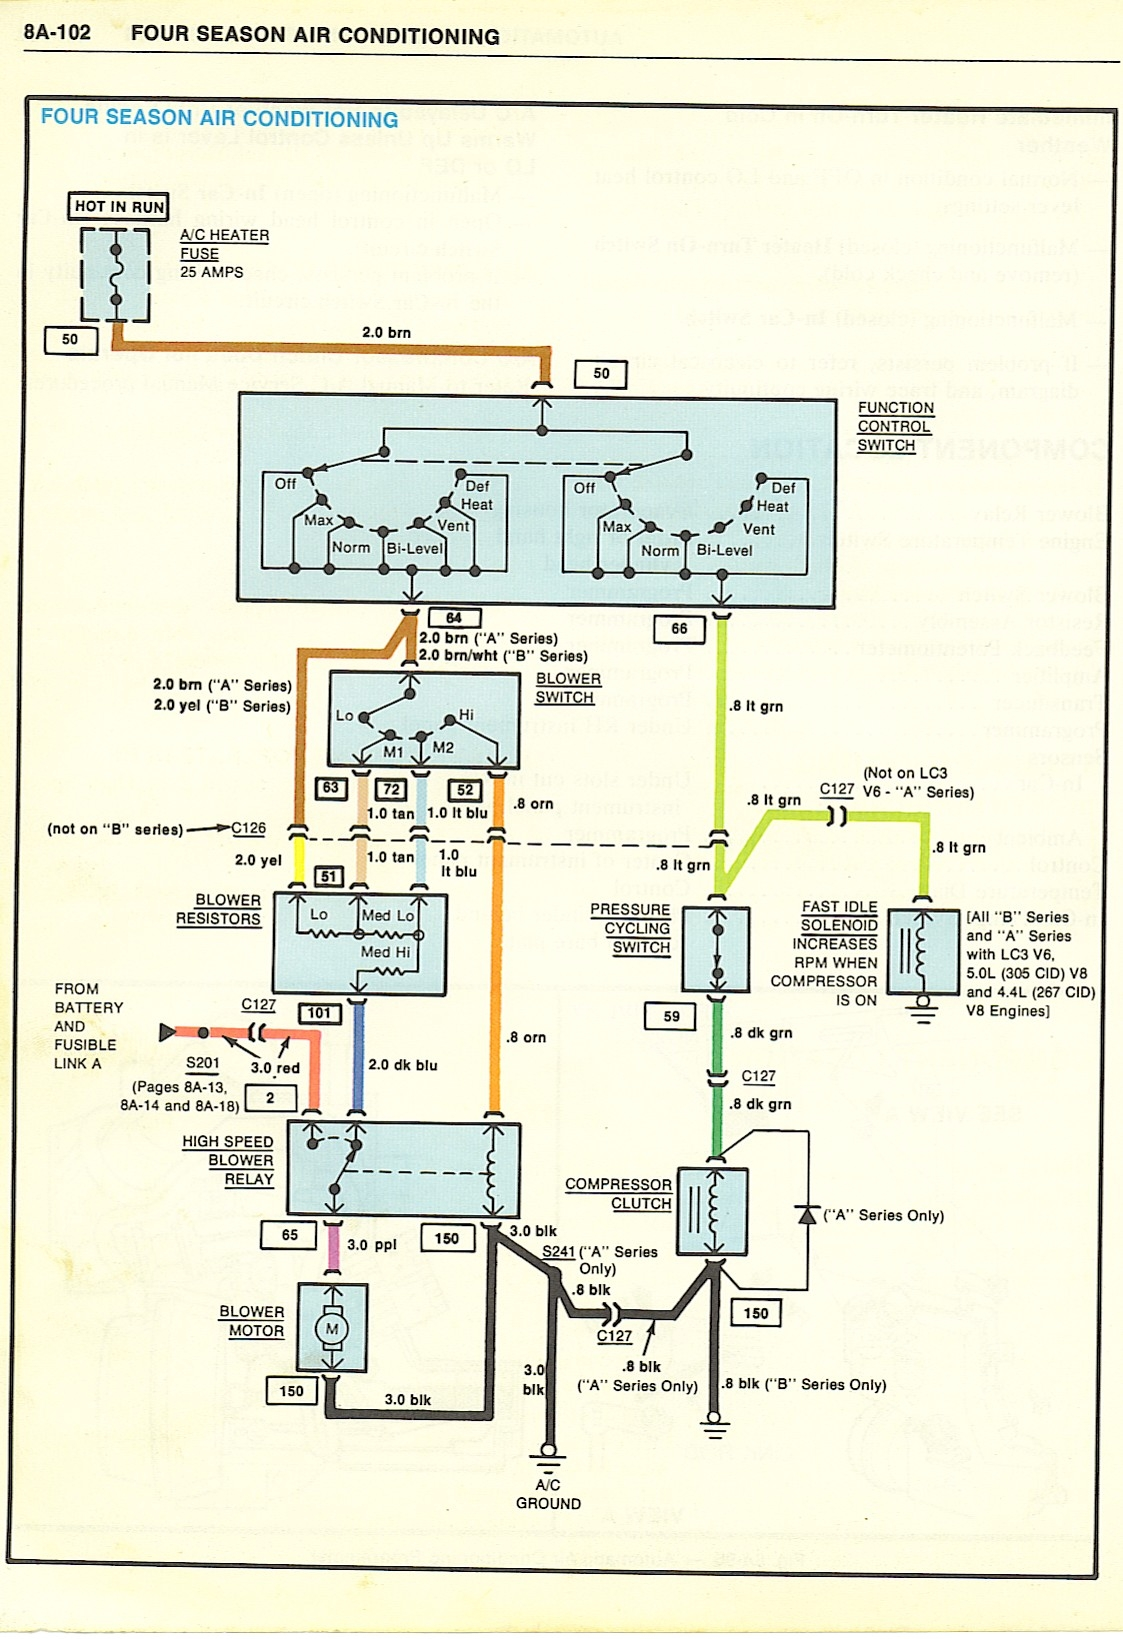 1968 FourSeasonAirConditioner chevy diagrams 2000 C5 Corvette Wiring Diagram at gsmx.co